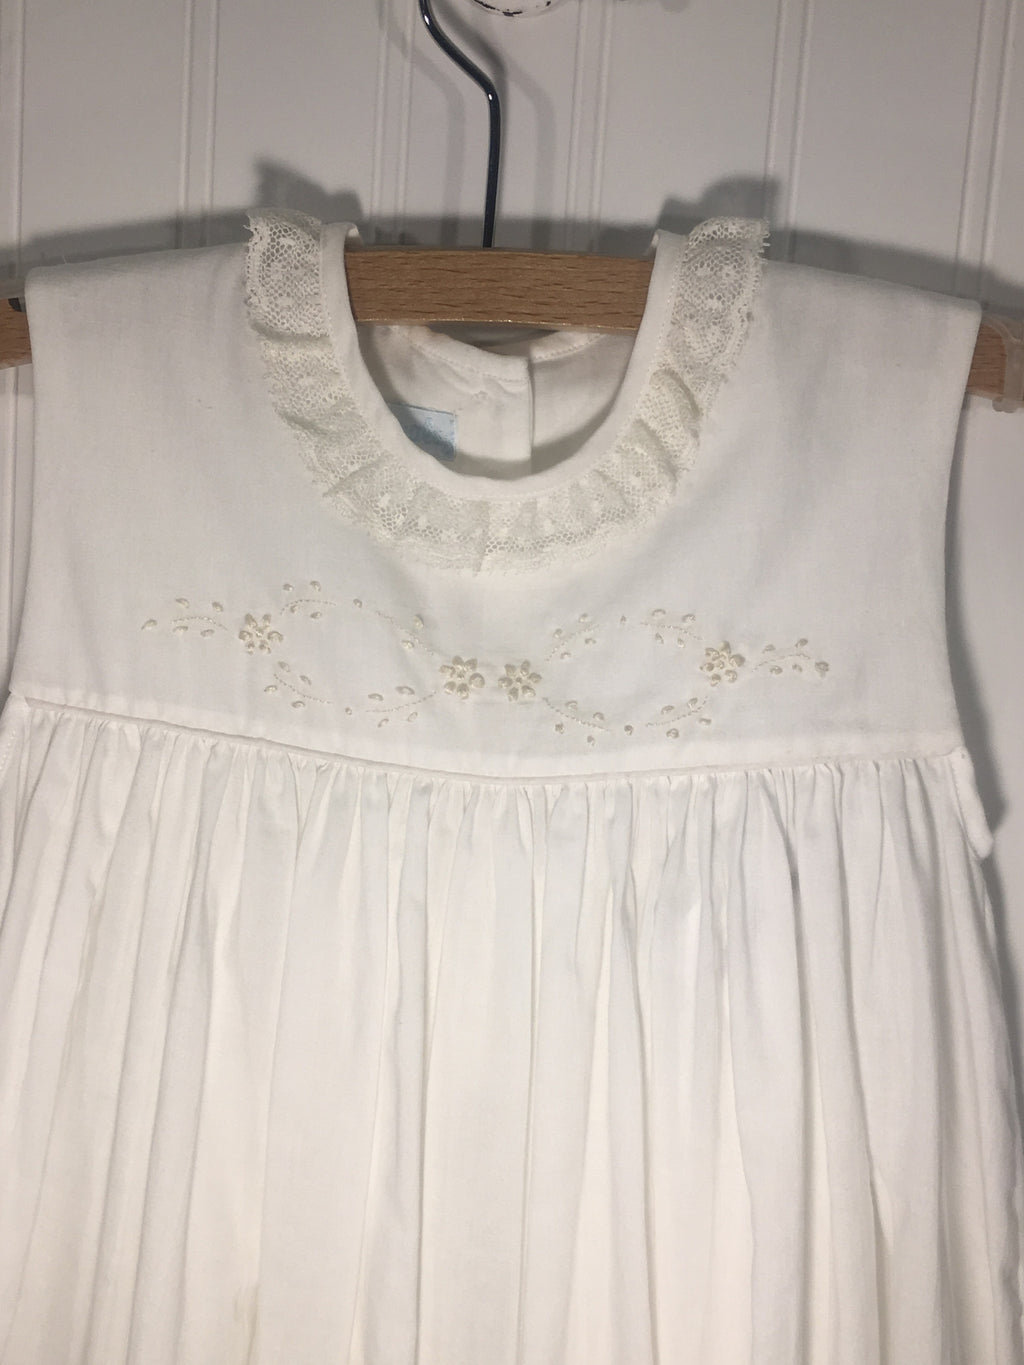 Heirloom Sleeveless Dress White with Ecru - Born Childrens Boutique  - 3